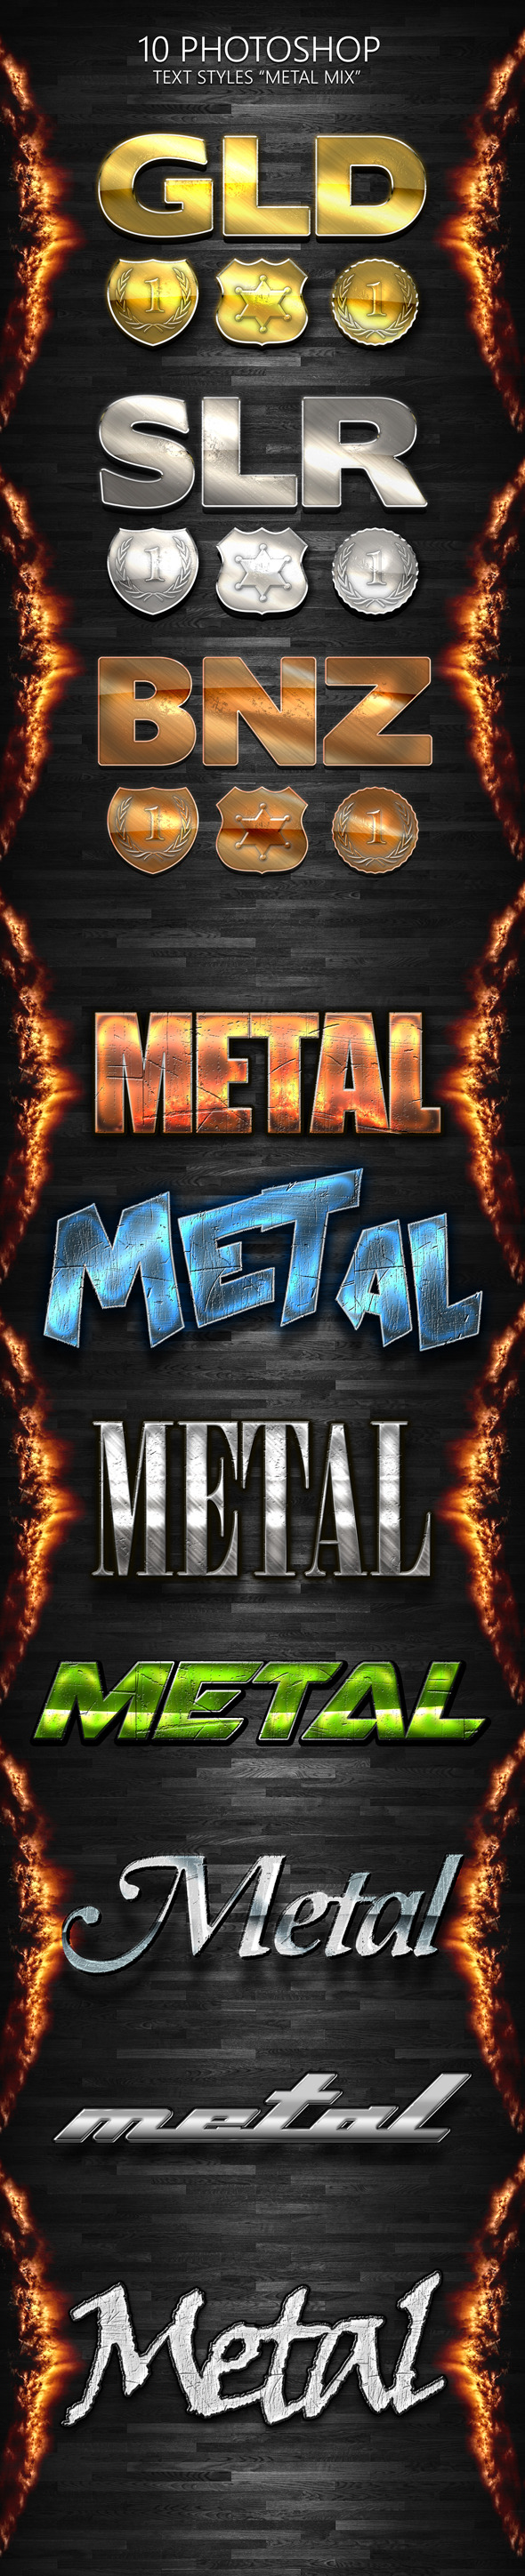 "10 Photoshop Styles ""METAL MIX"" - Styles Photoshop"